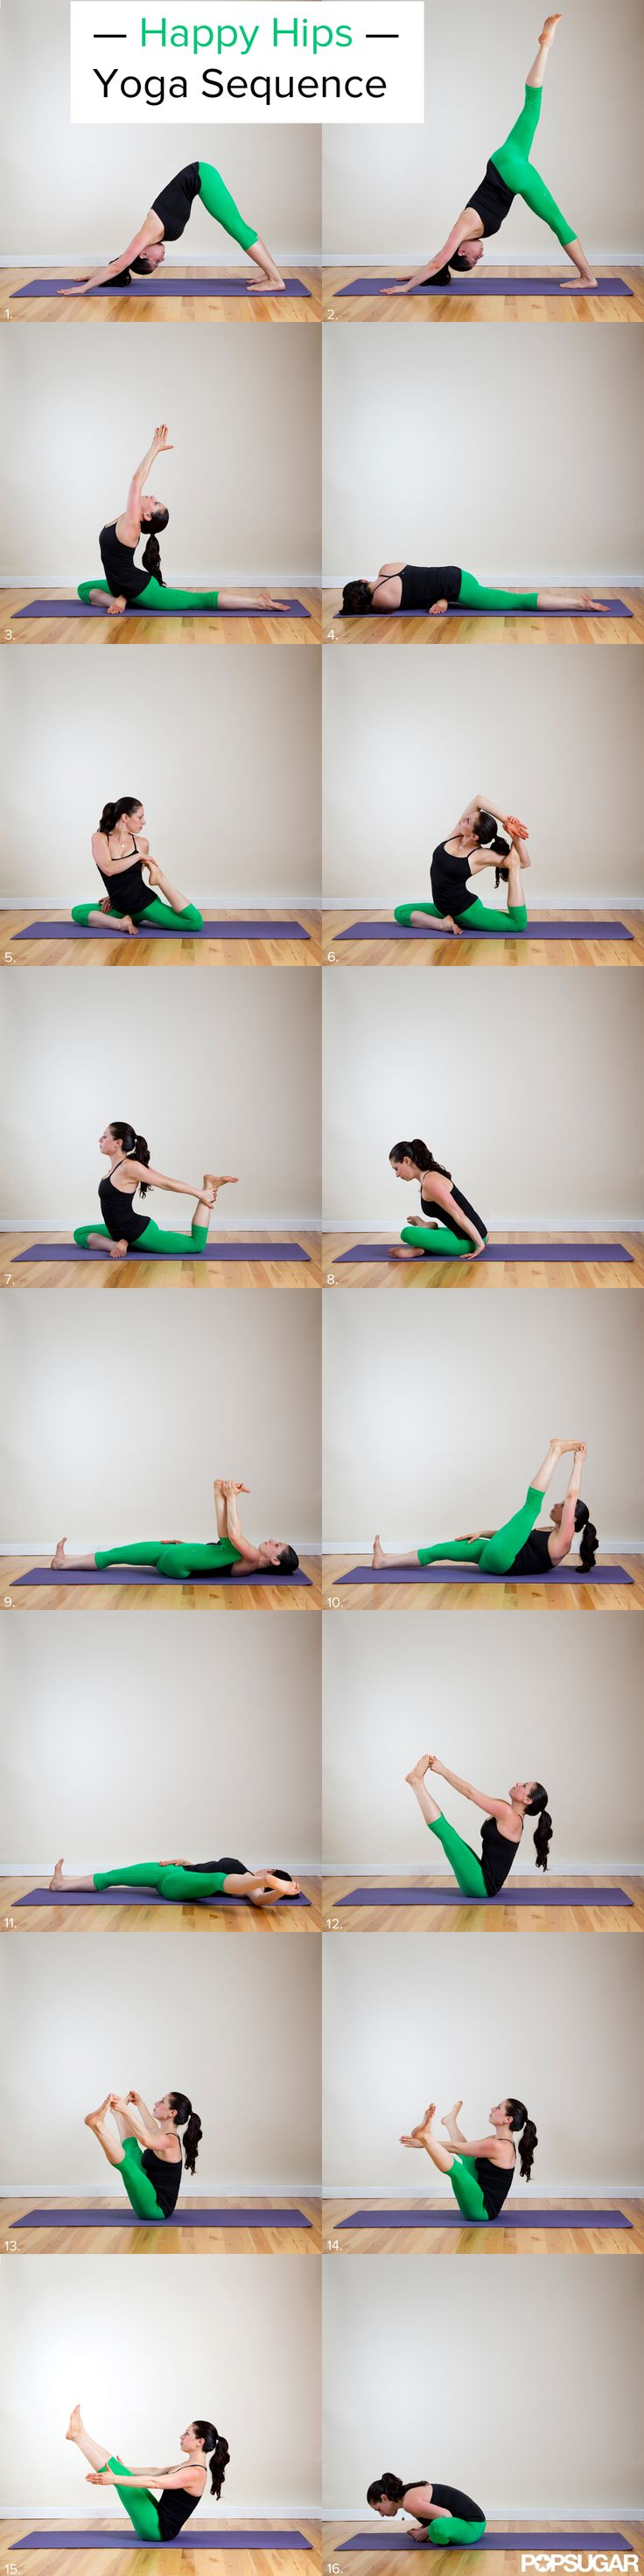 Happy Hips Yoga Sequence - Runners and the deskbound rejoice! Your tight hips will soon feel more open and relaxed. Just step onto your yoga mat or even the floor next to your computer and move through this 16-pose hip-opening sequence.